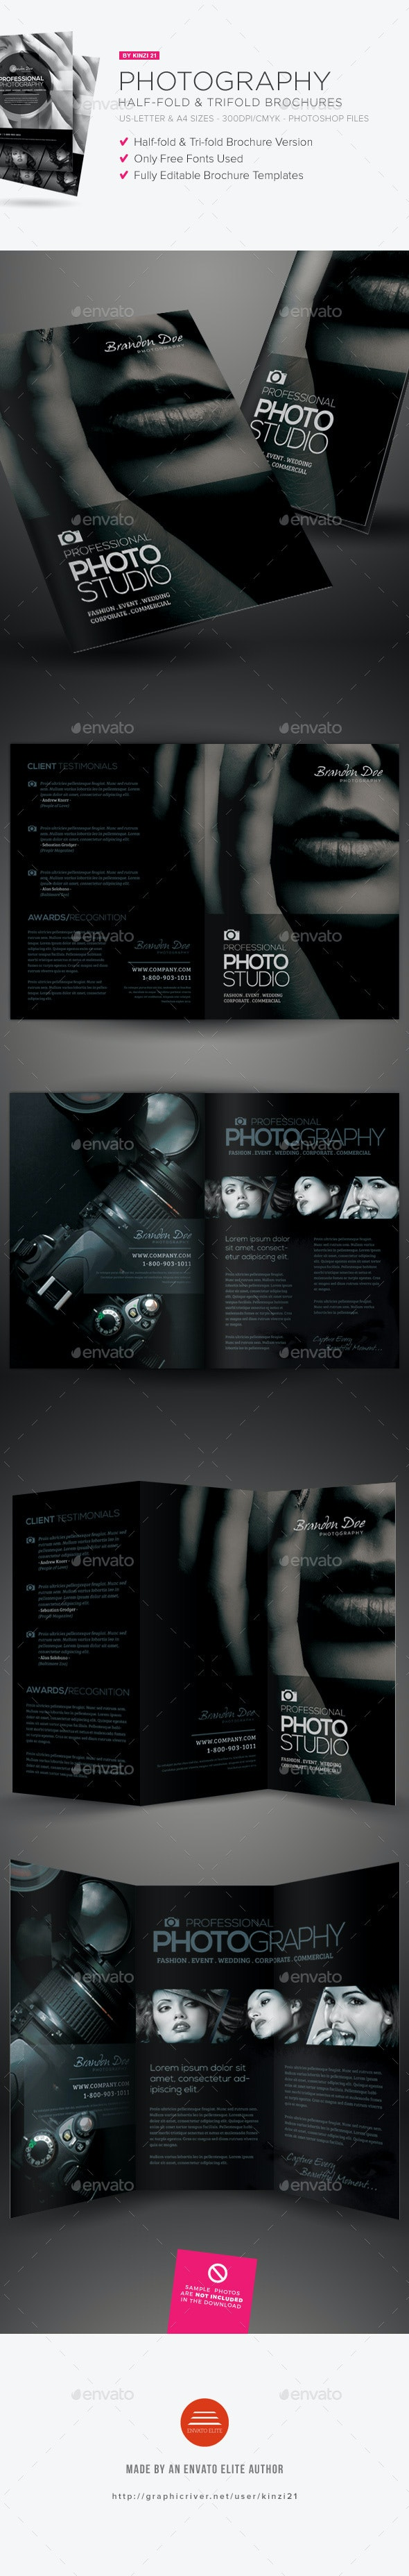 Photography Half-Fold and Trifold Brochures - Corporate Brochures